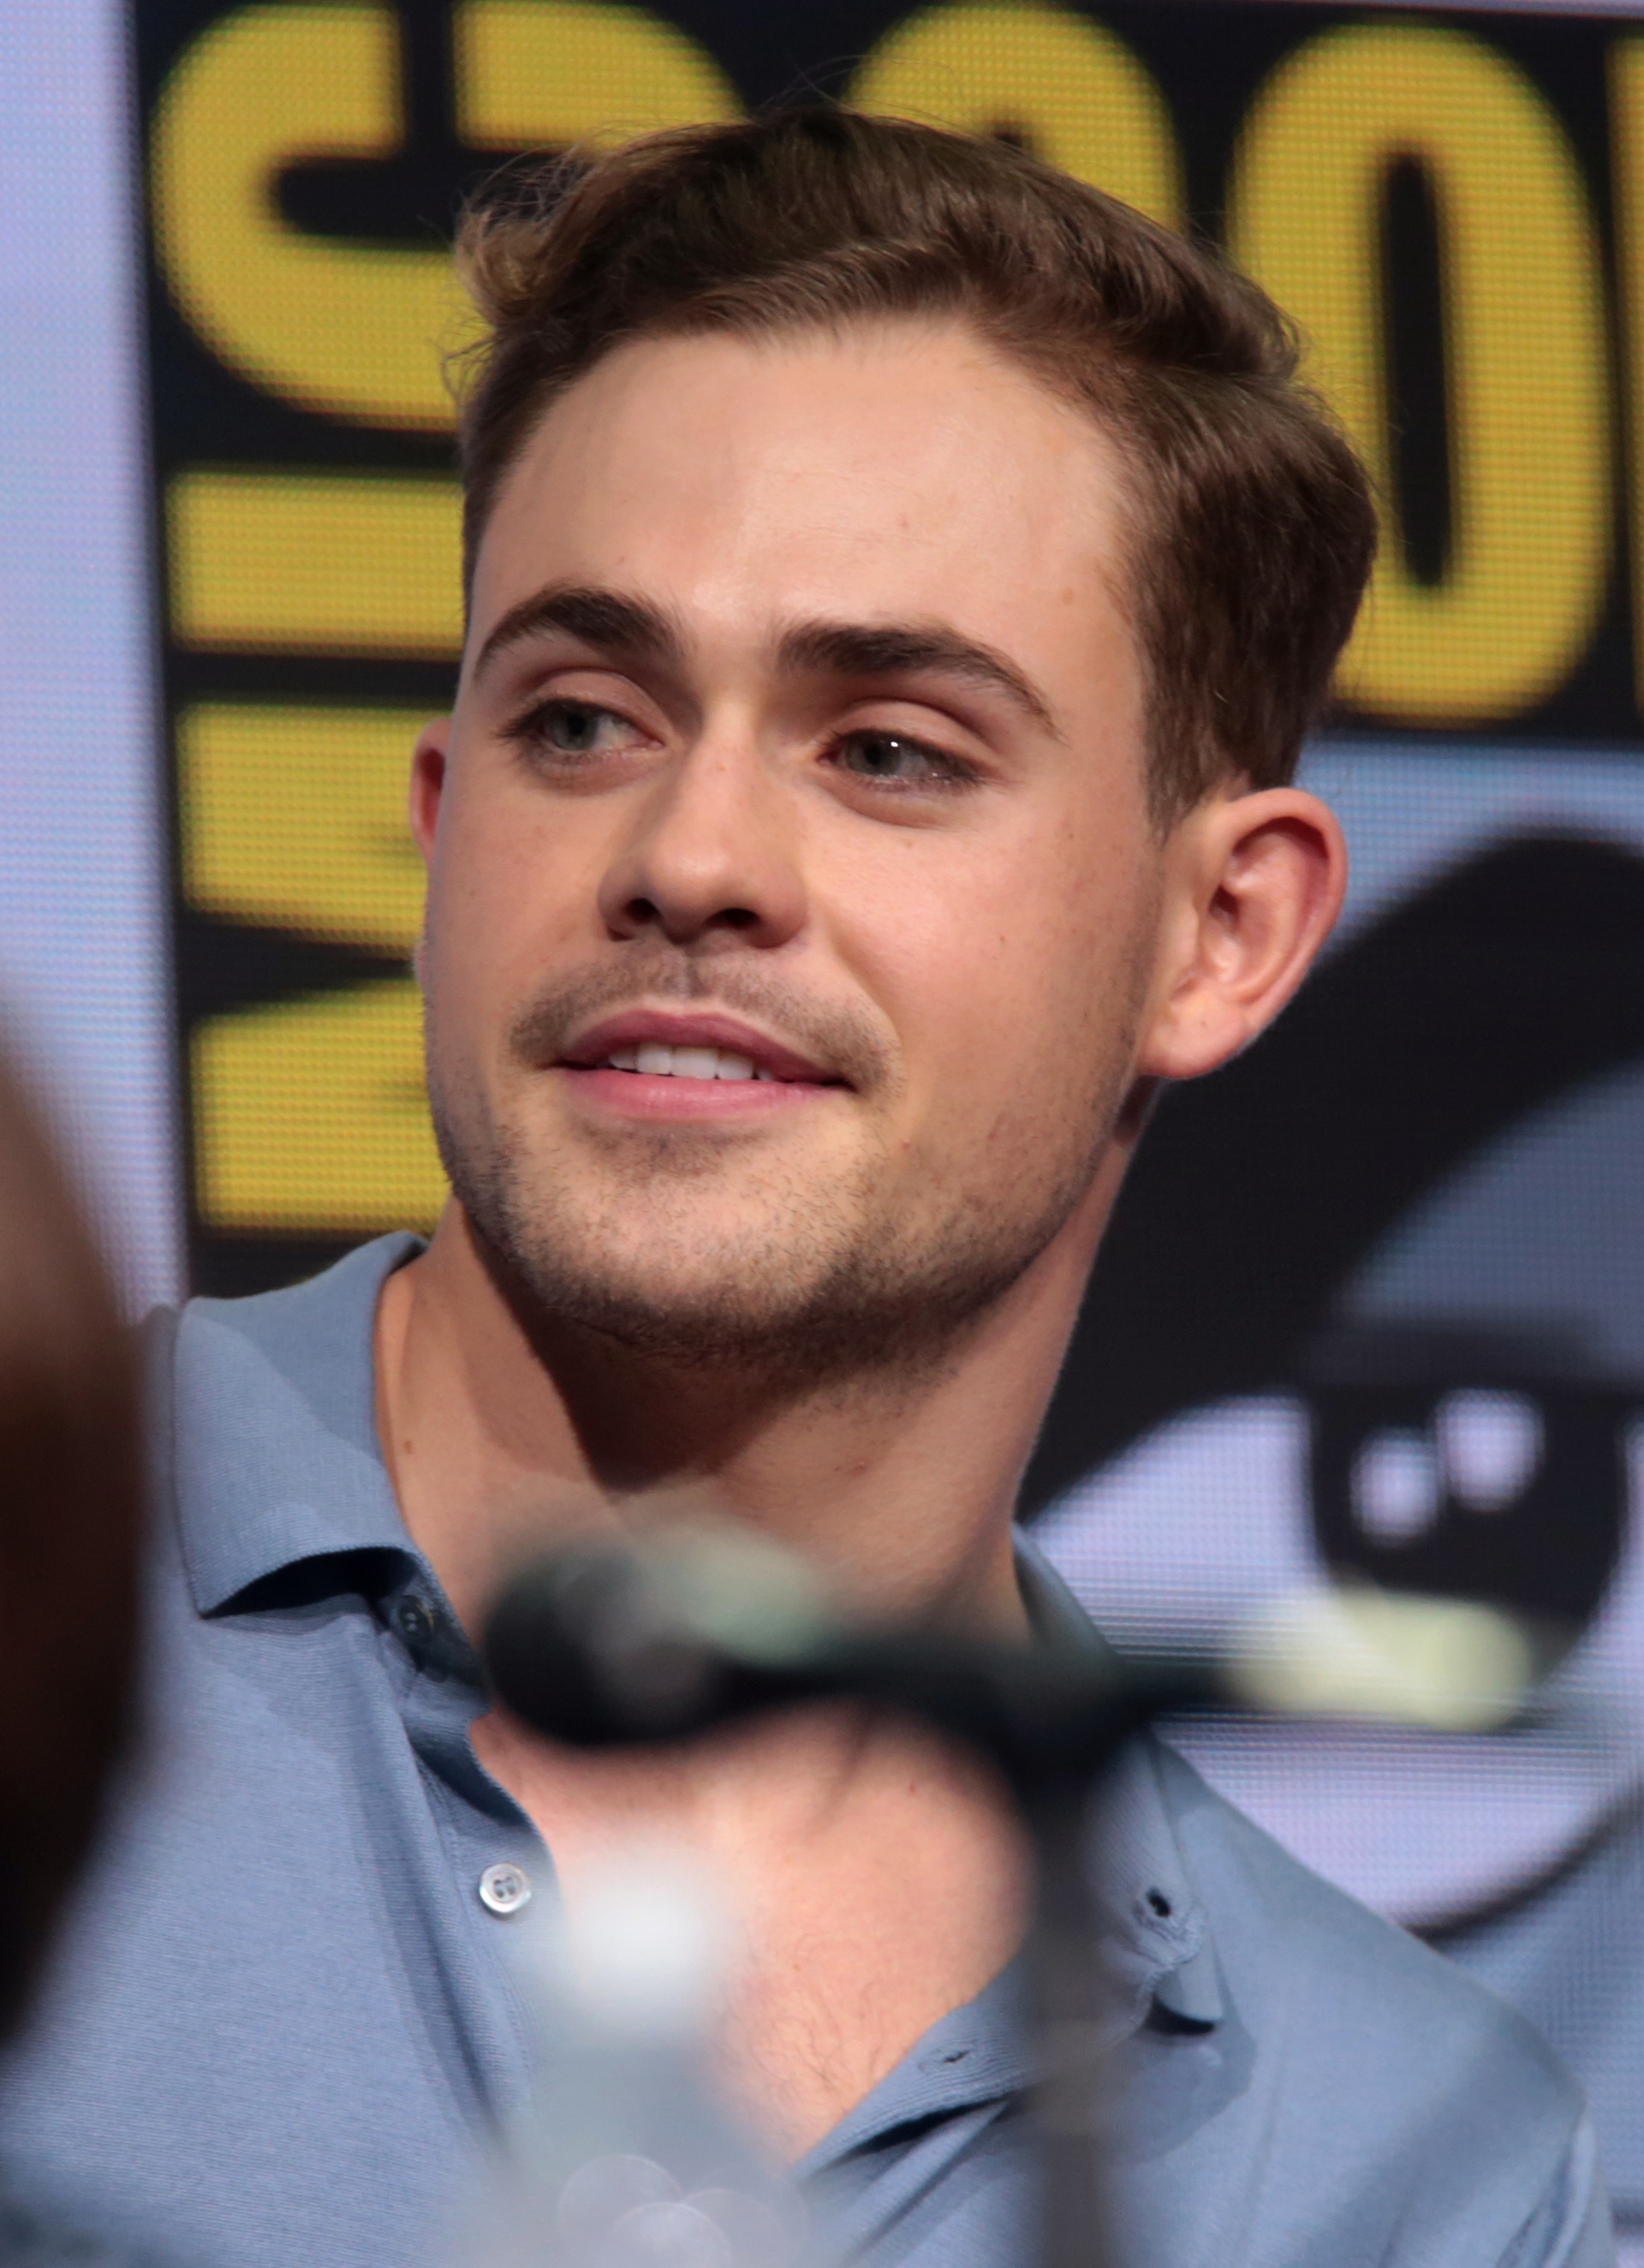 The 23-year old son of father (?) and mother(?) Dacre Montgomery in 2018 photo. Dacre Montgomery earned a  million dollar salary - leaving the net worth at 1 million in 2018